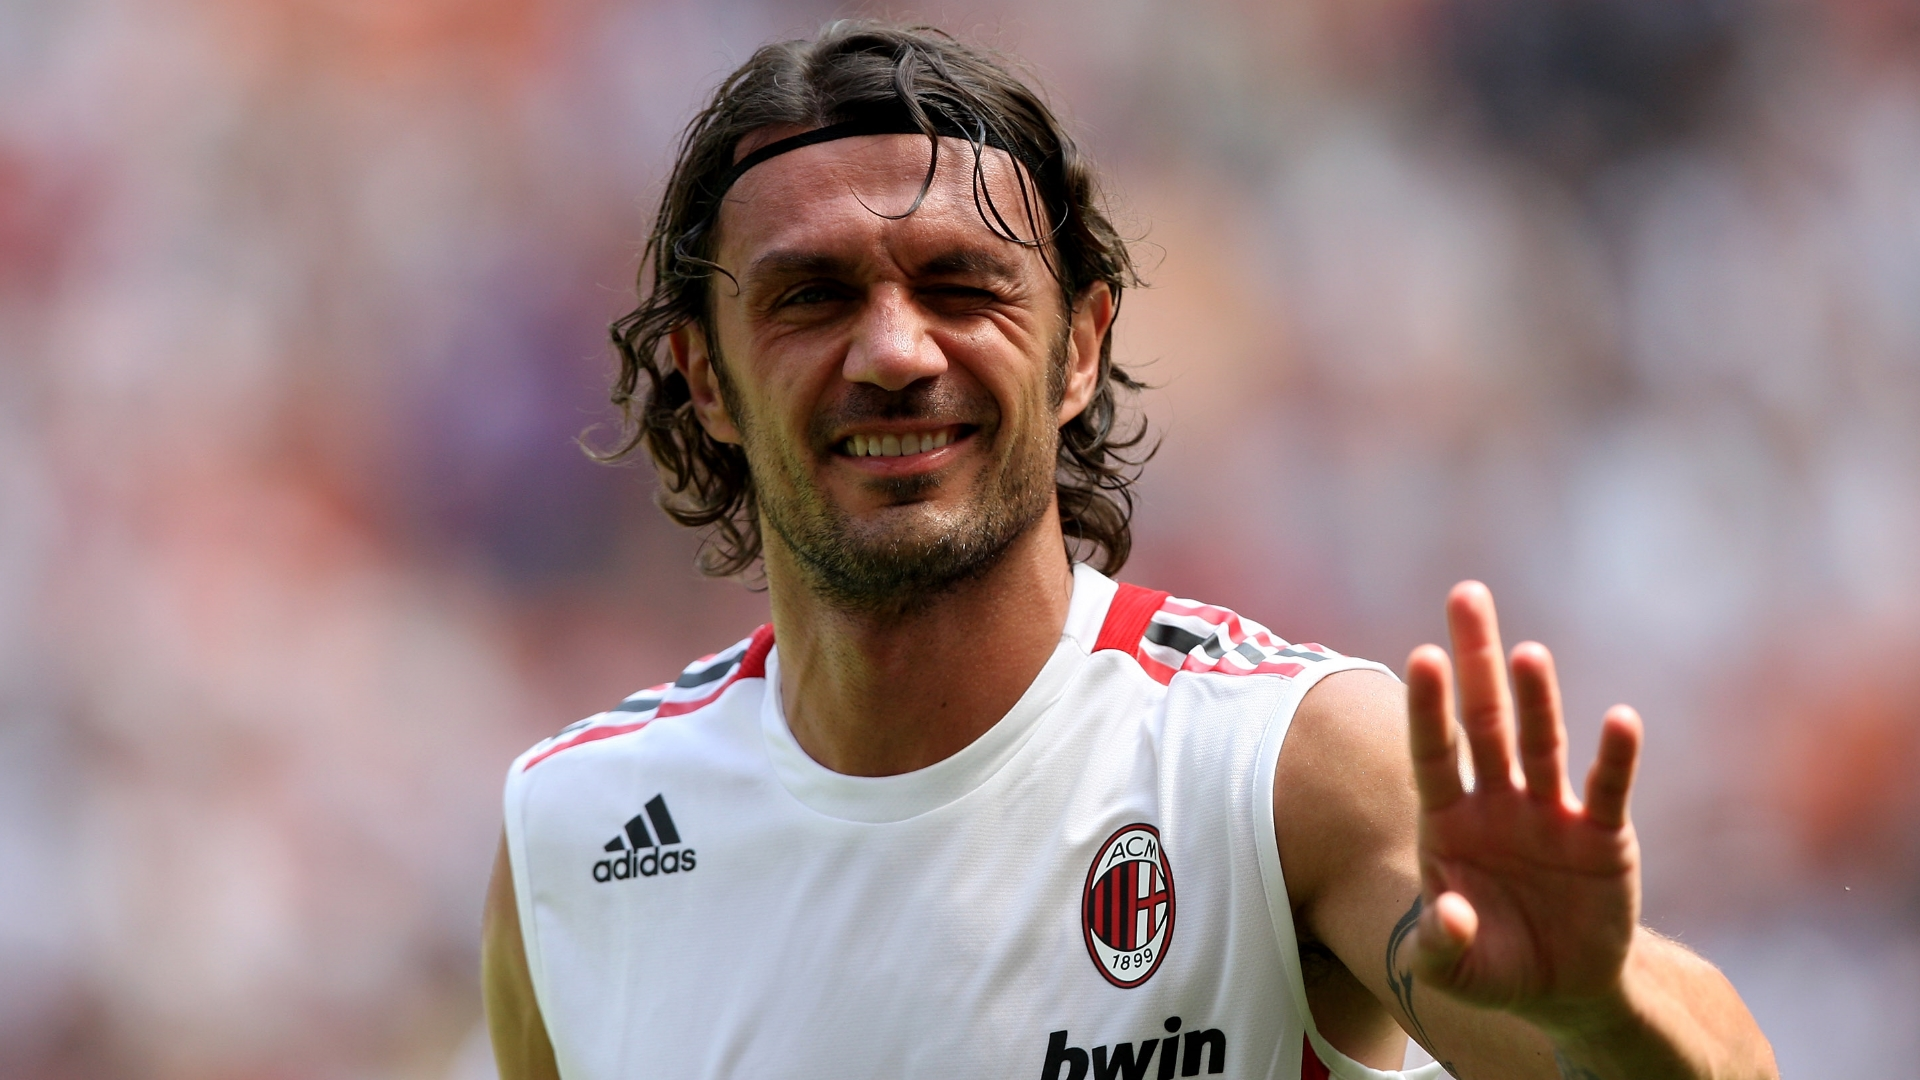 Paolo Maldini to star in Milan again - at tennis